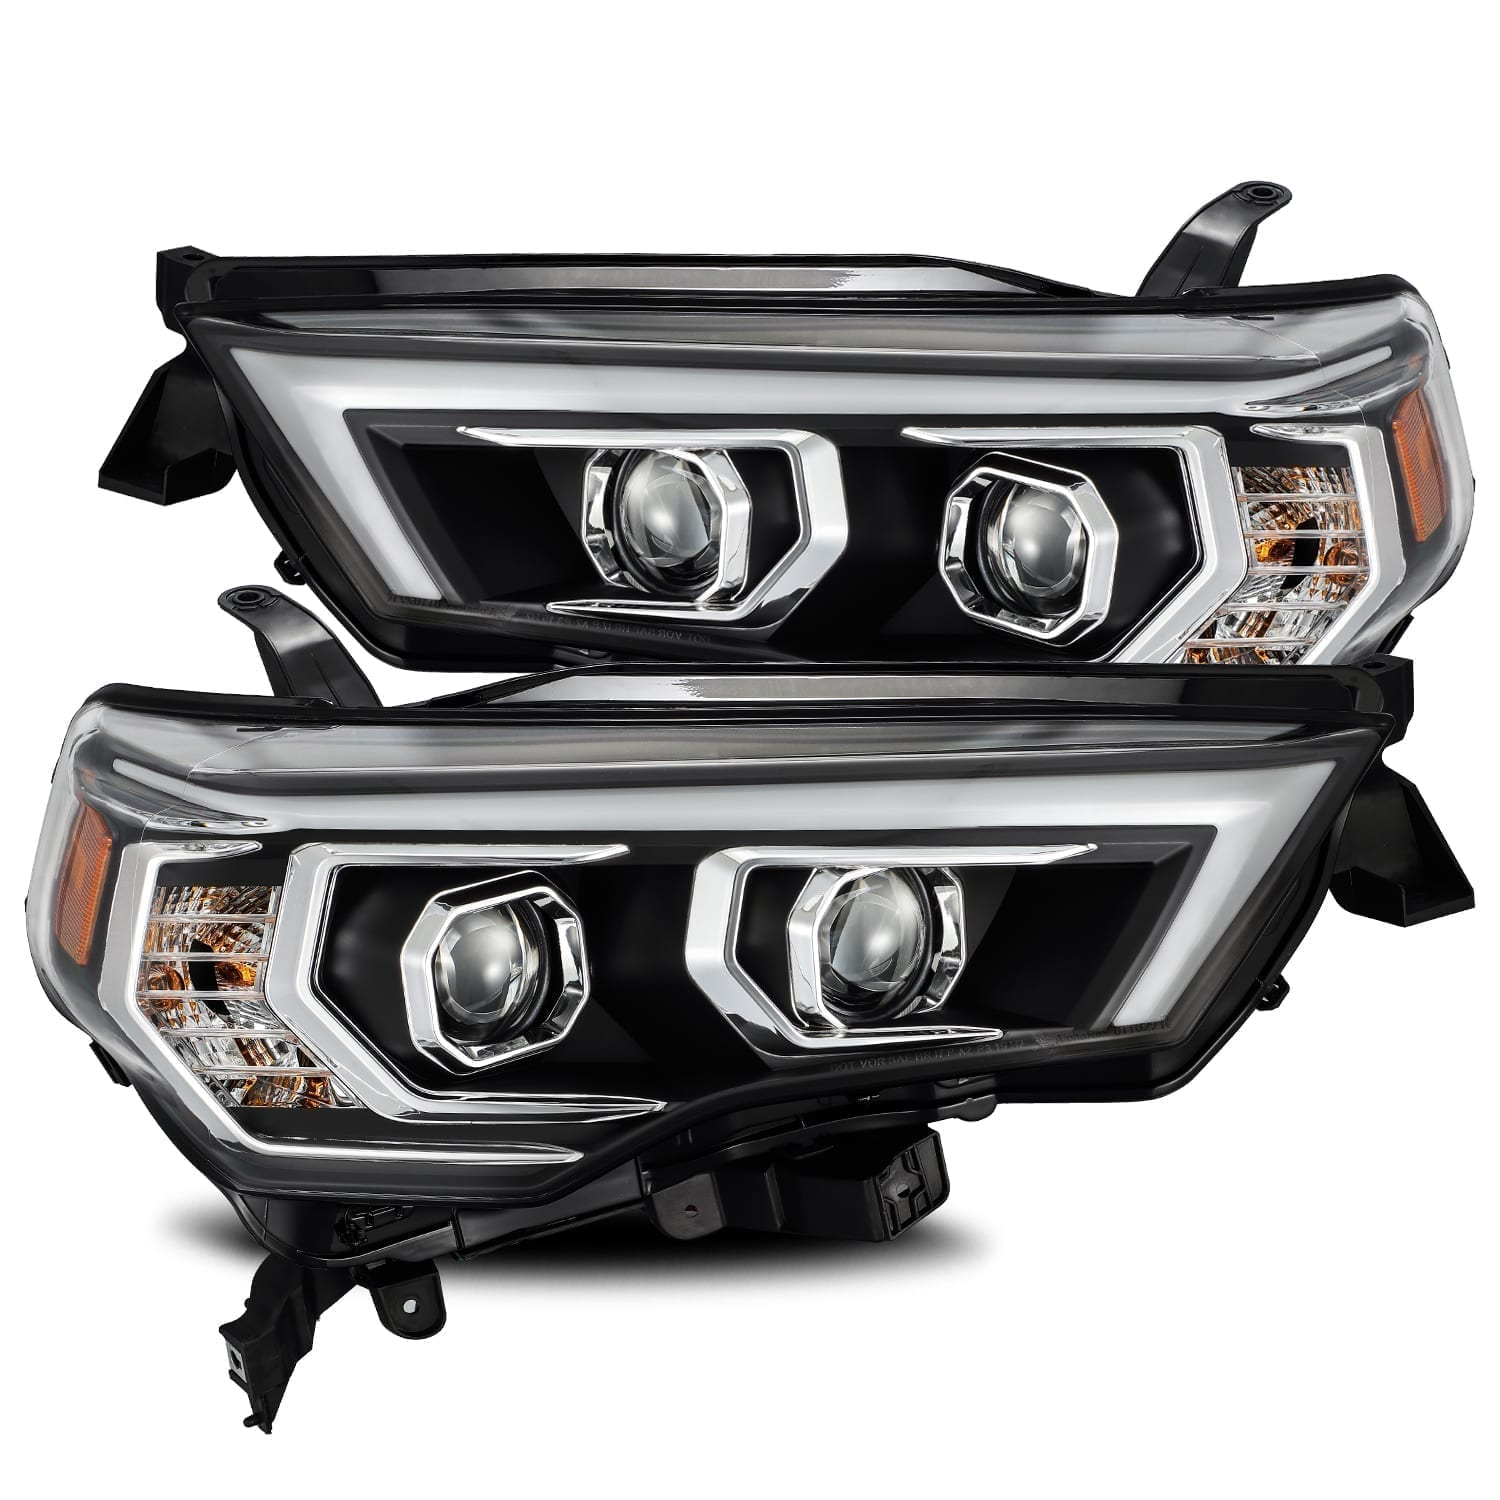 AlphaRex - LUXX-Series Projector Headlights Black - Toyota 4Runner 5th Gen 2014-2021 - 4x4 Runners